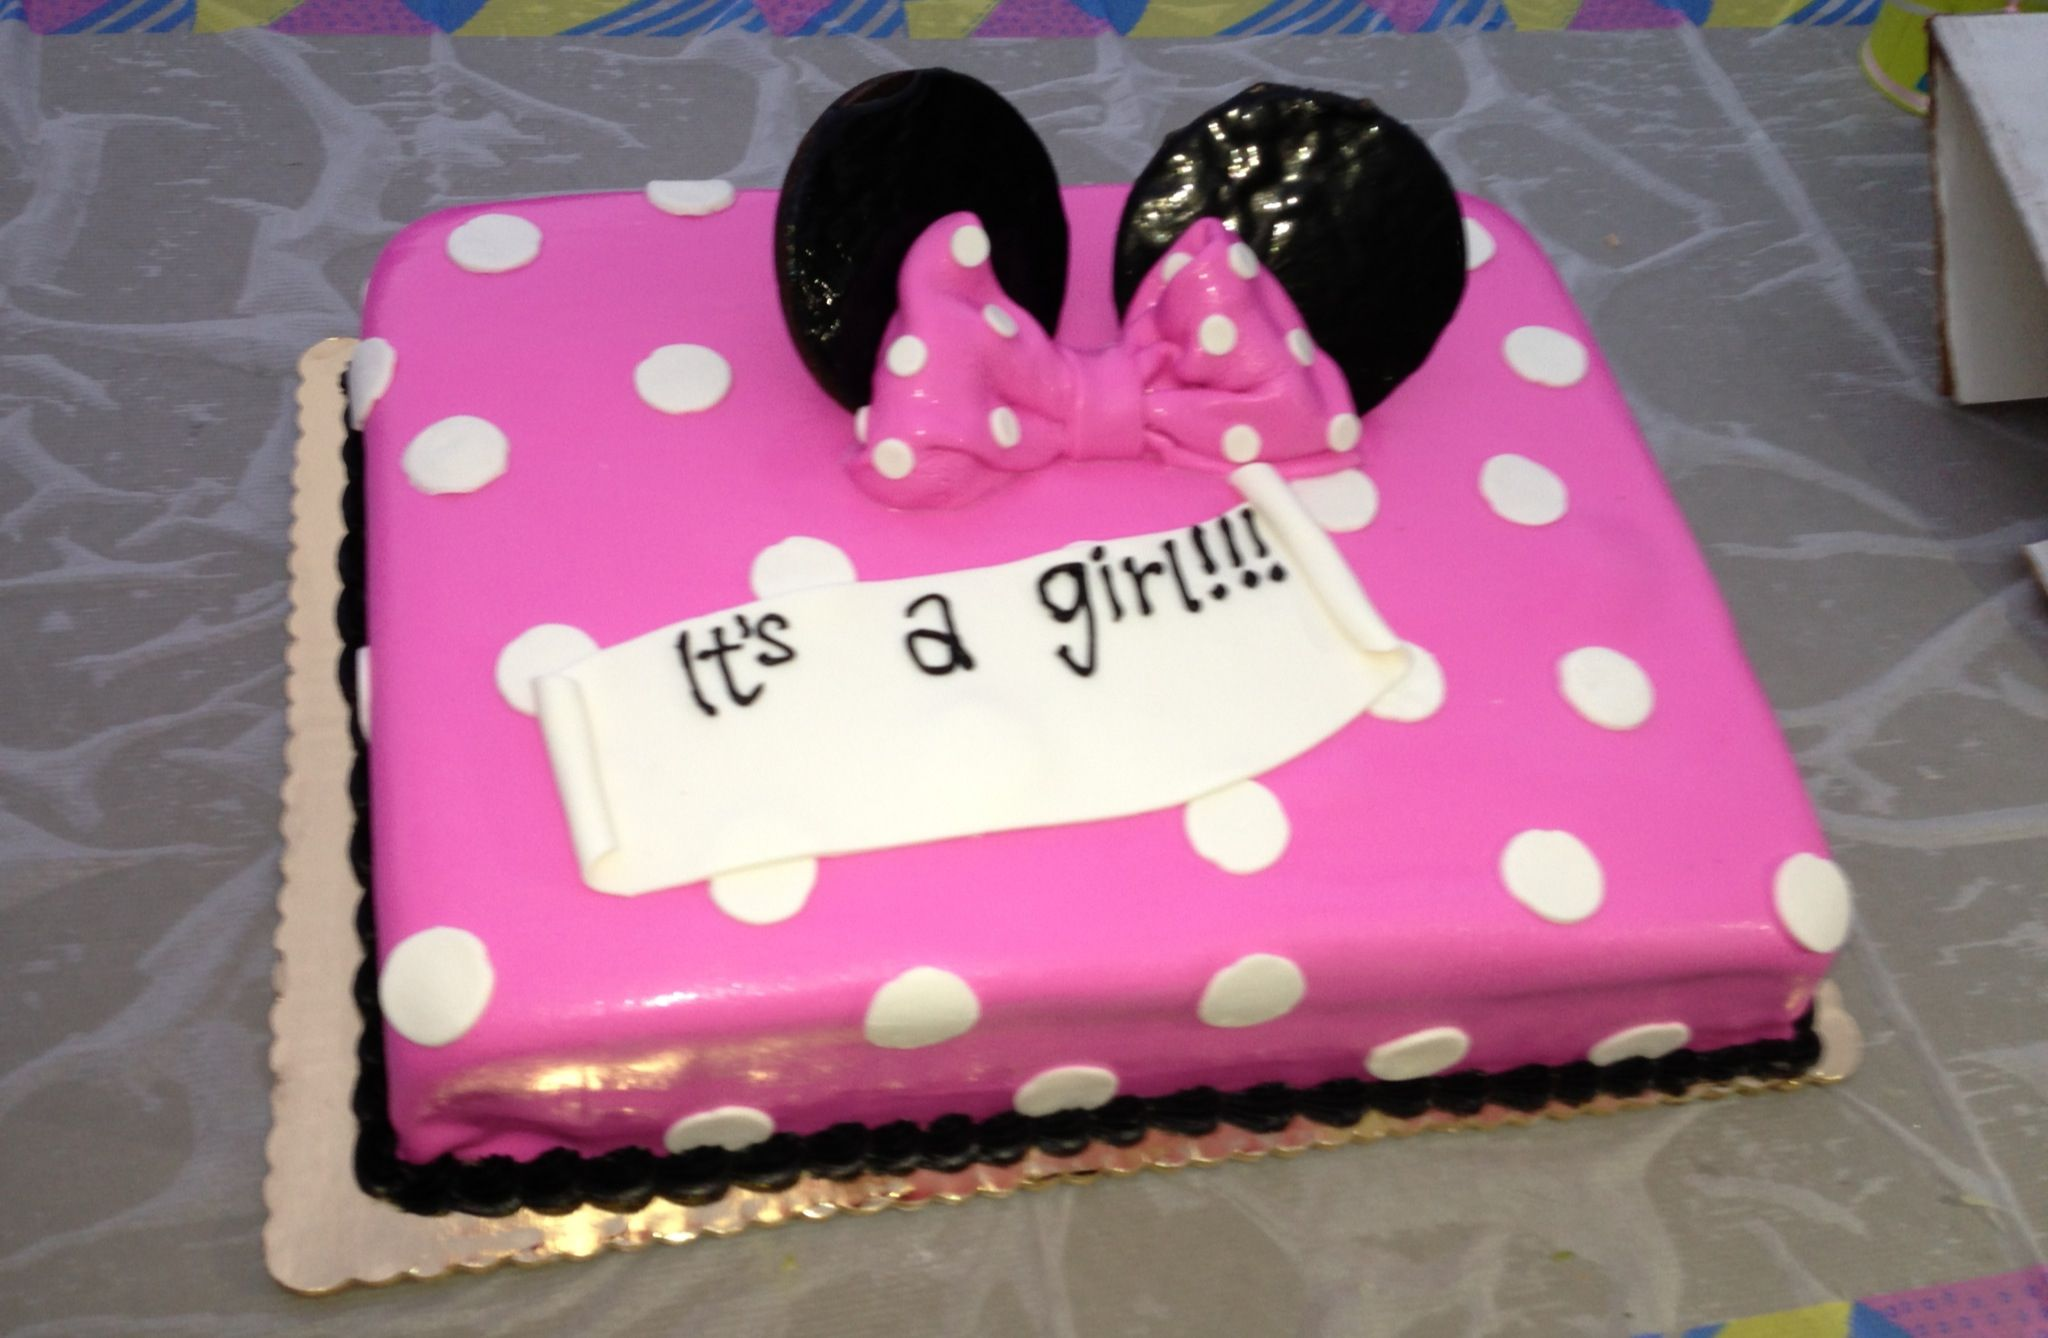 Minnie Mouse Baby Shower Cake Images : Cute Minnie Mouse baby shower cake. My love/passion for ...